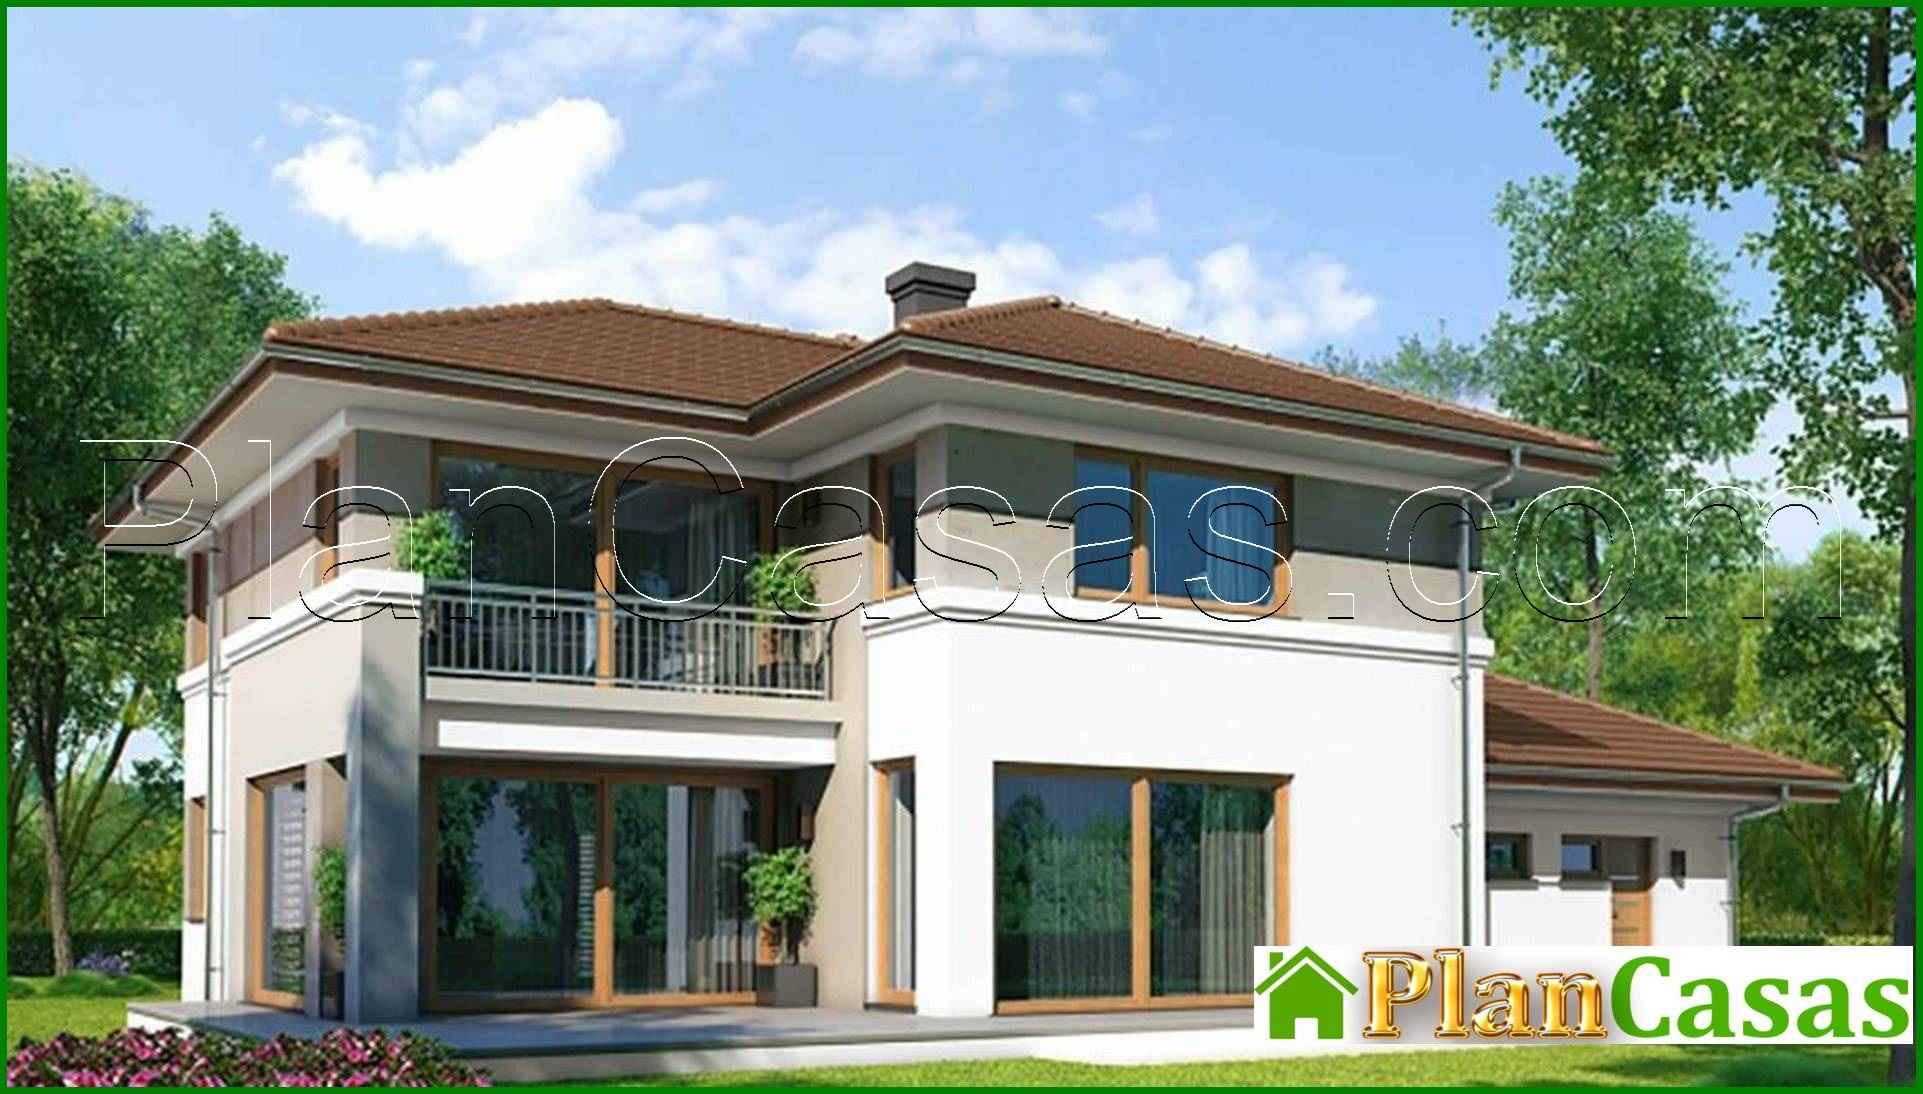 267 Modern Two Story House In A Classic Style Plancasas Shop